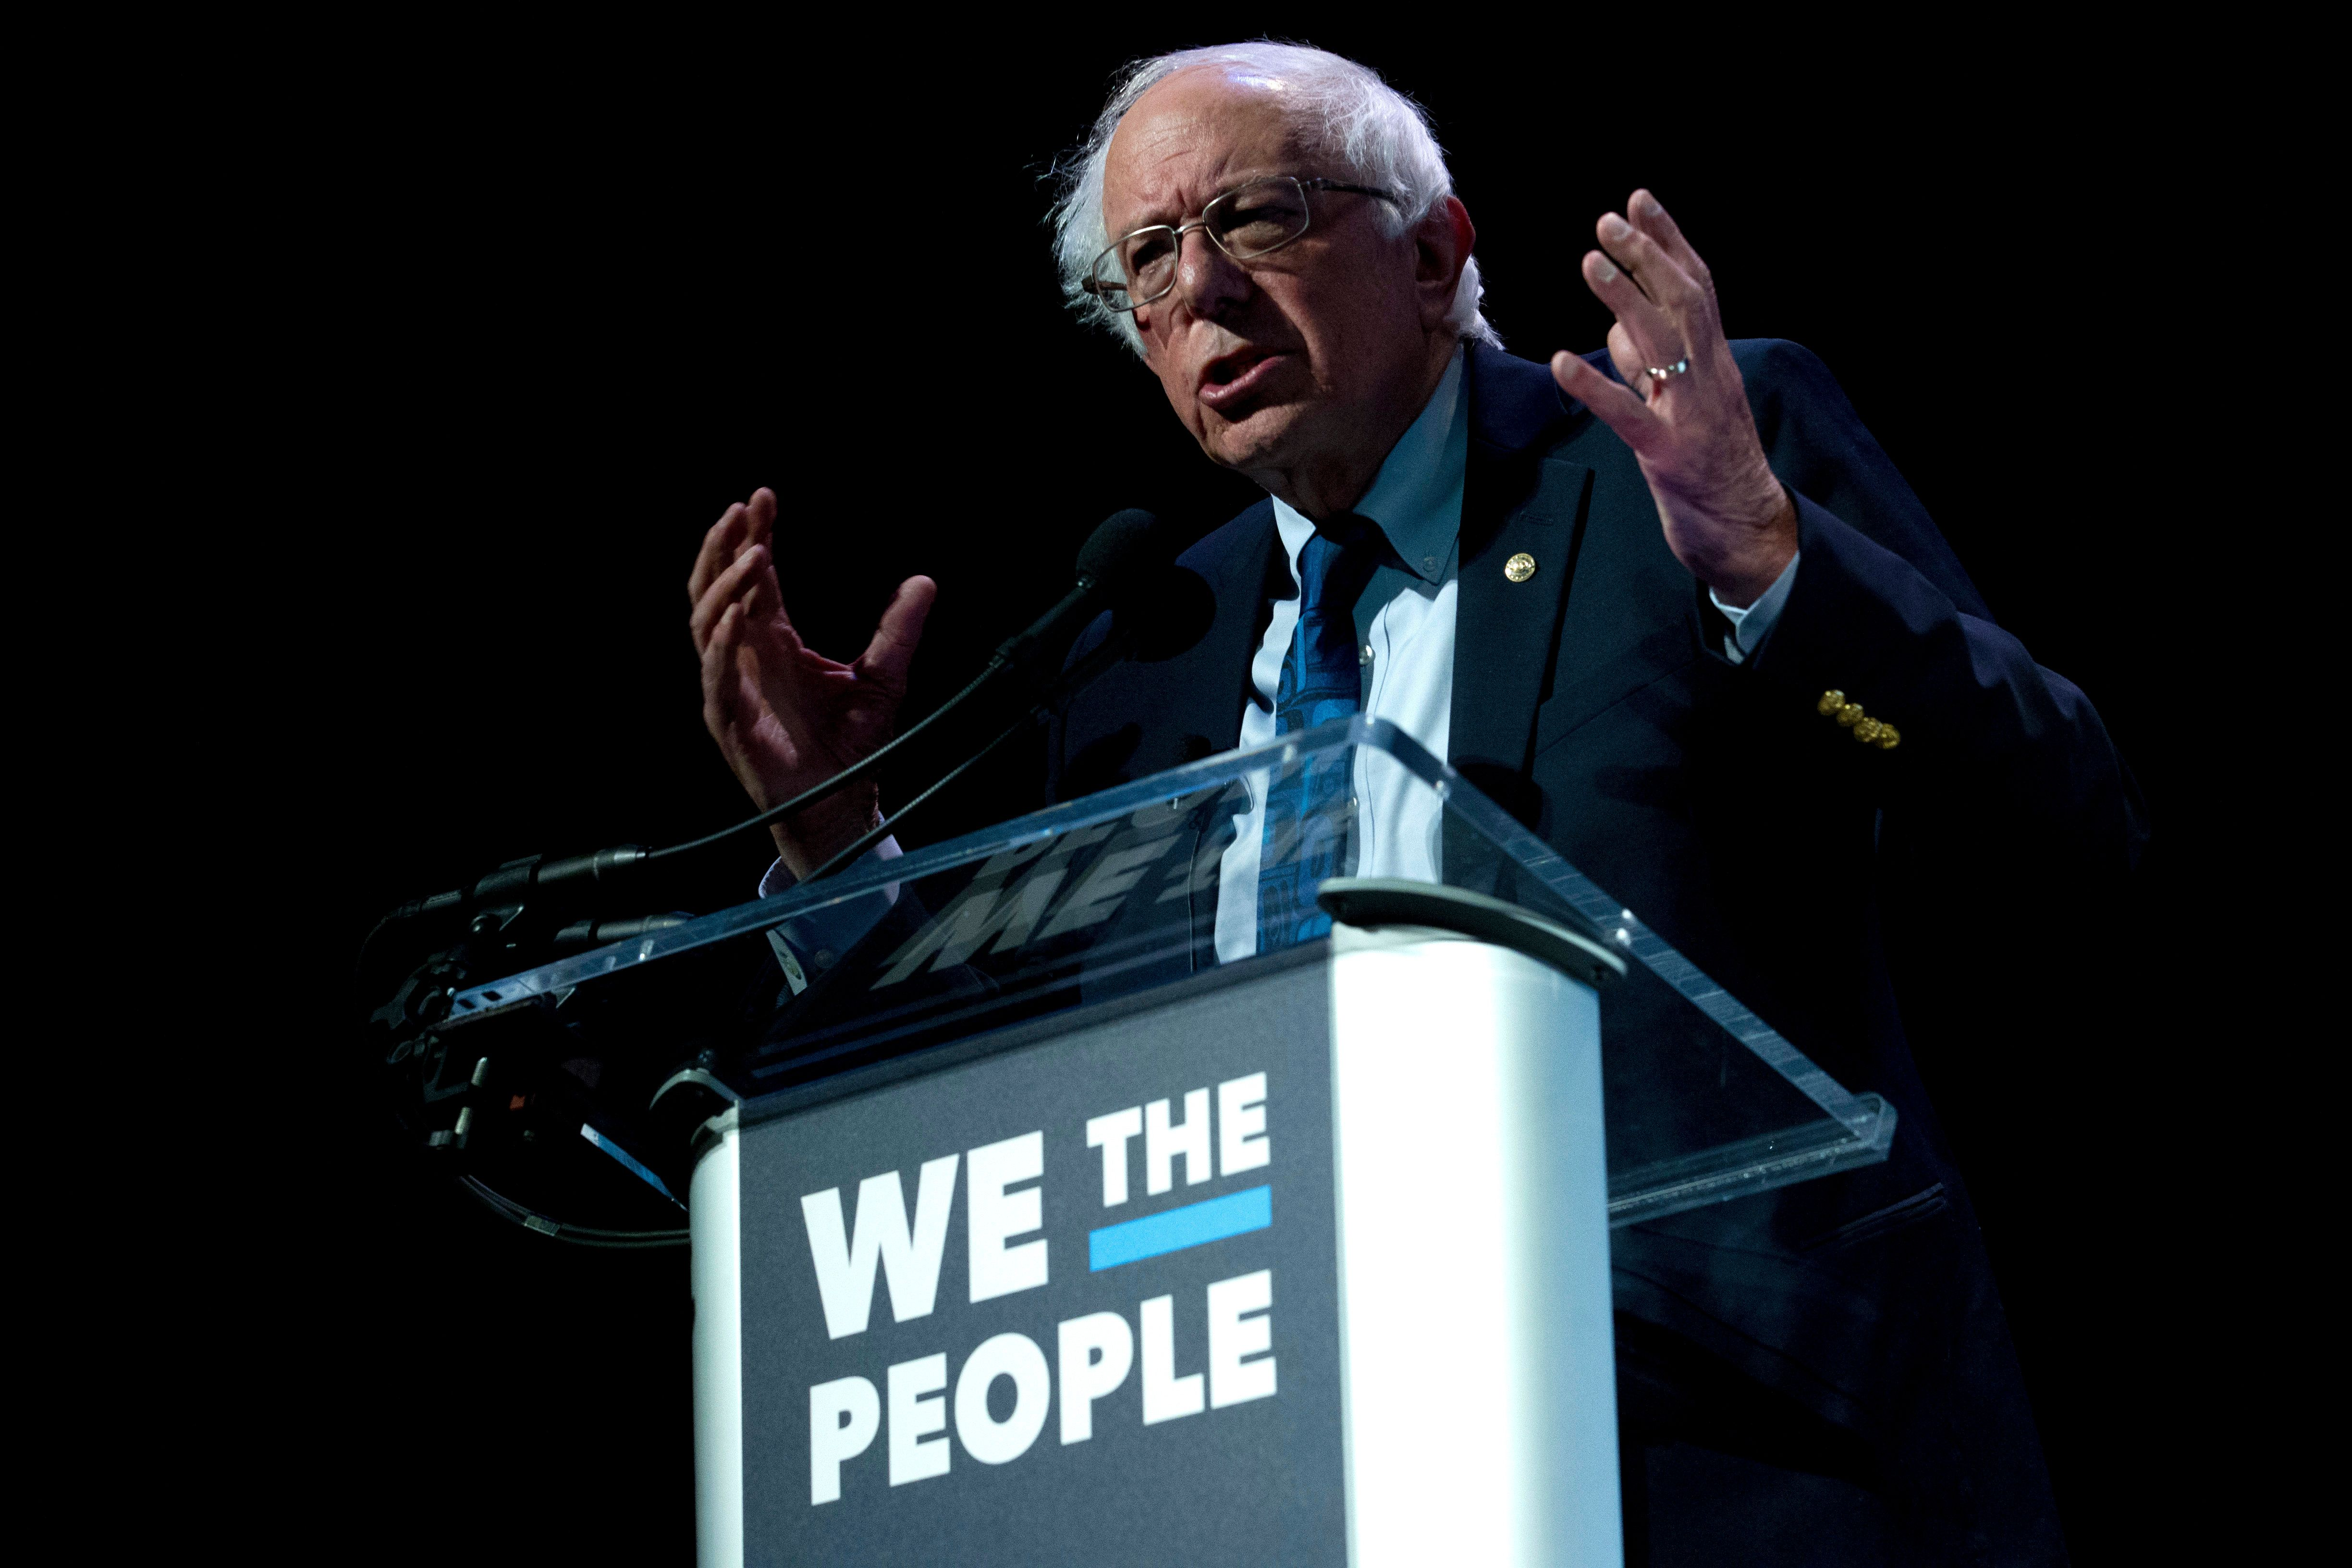 Independent presidential candidate Sen. Bernie Sanders, I-Vt., speaks during the We the People Membership Summit, featuring the 2020 Democratic presidential candidates, at the Warner Theater, in Washington, Monday, April 1, 2019. (AP Photo/Jose Luis Magana)